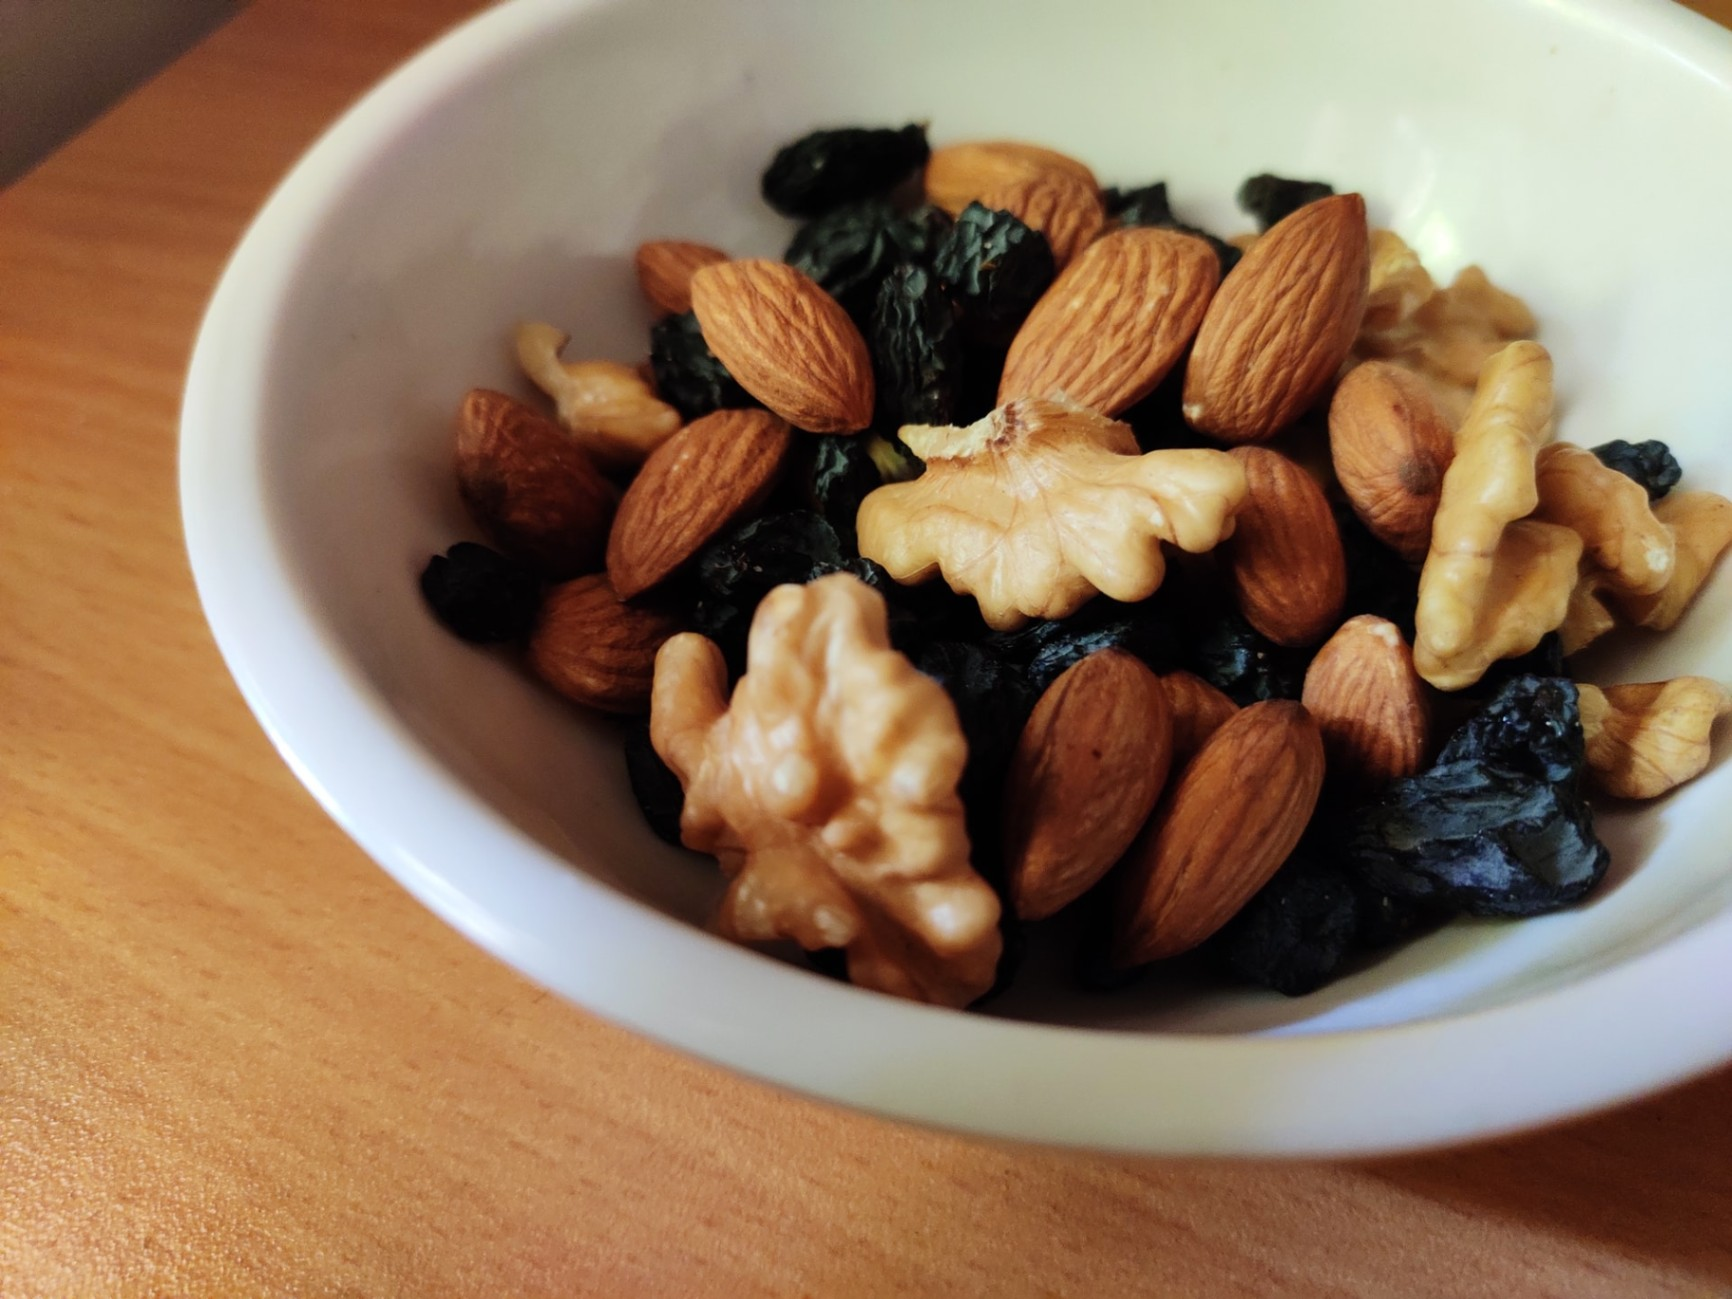 Discover 10 Simple and Healthy Snacks to Eat